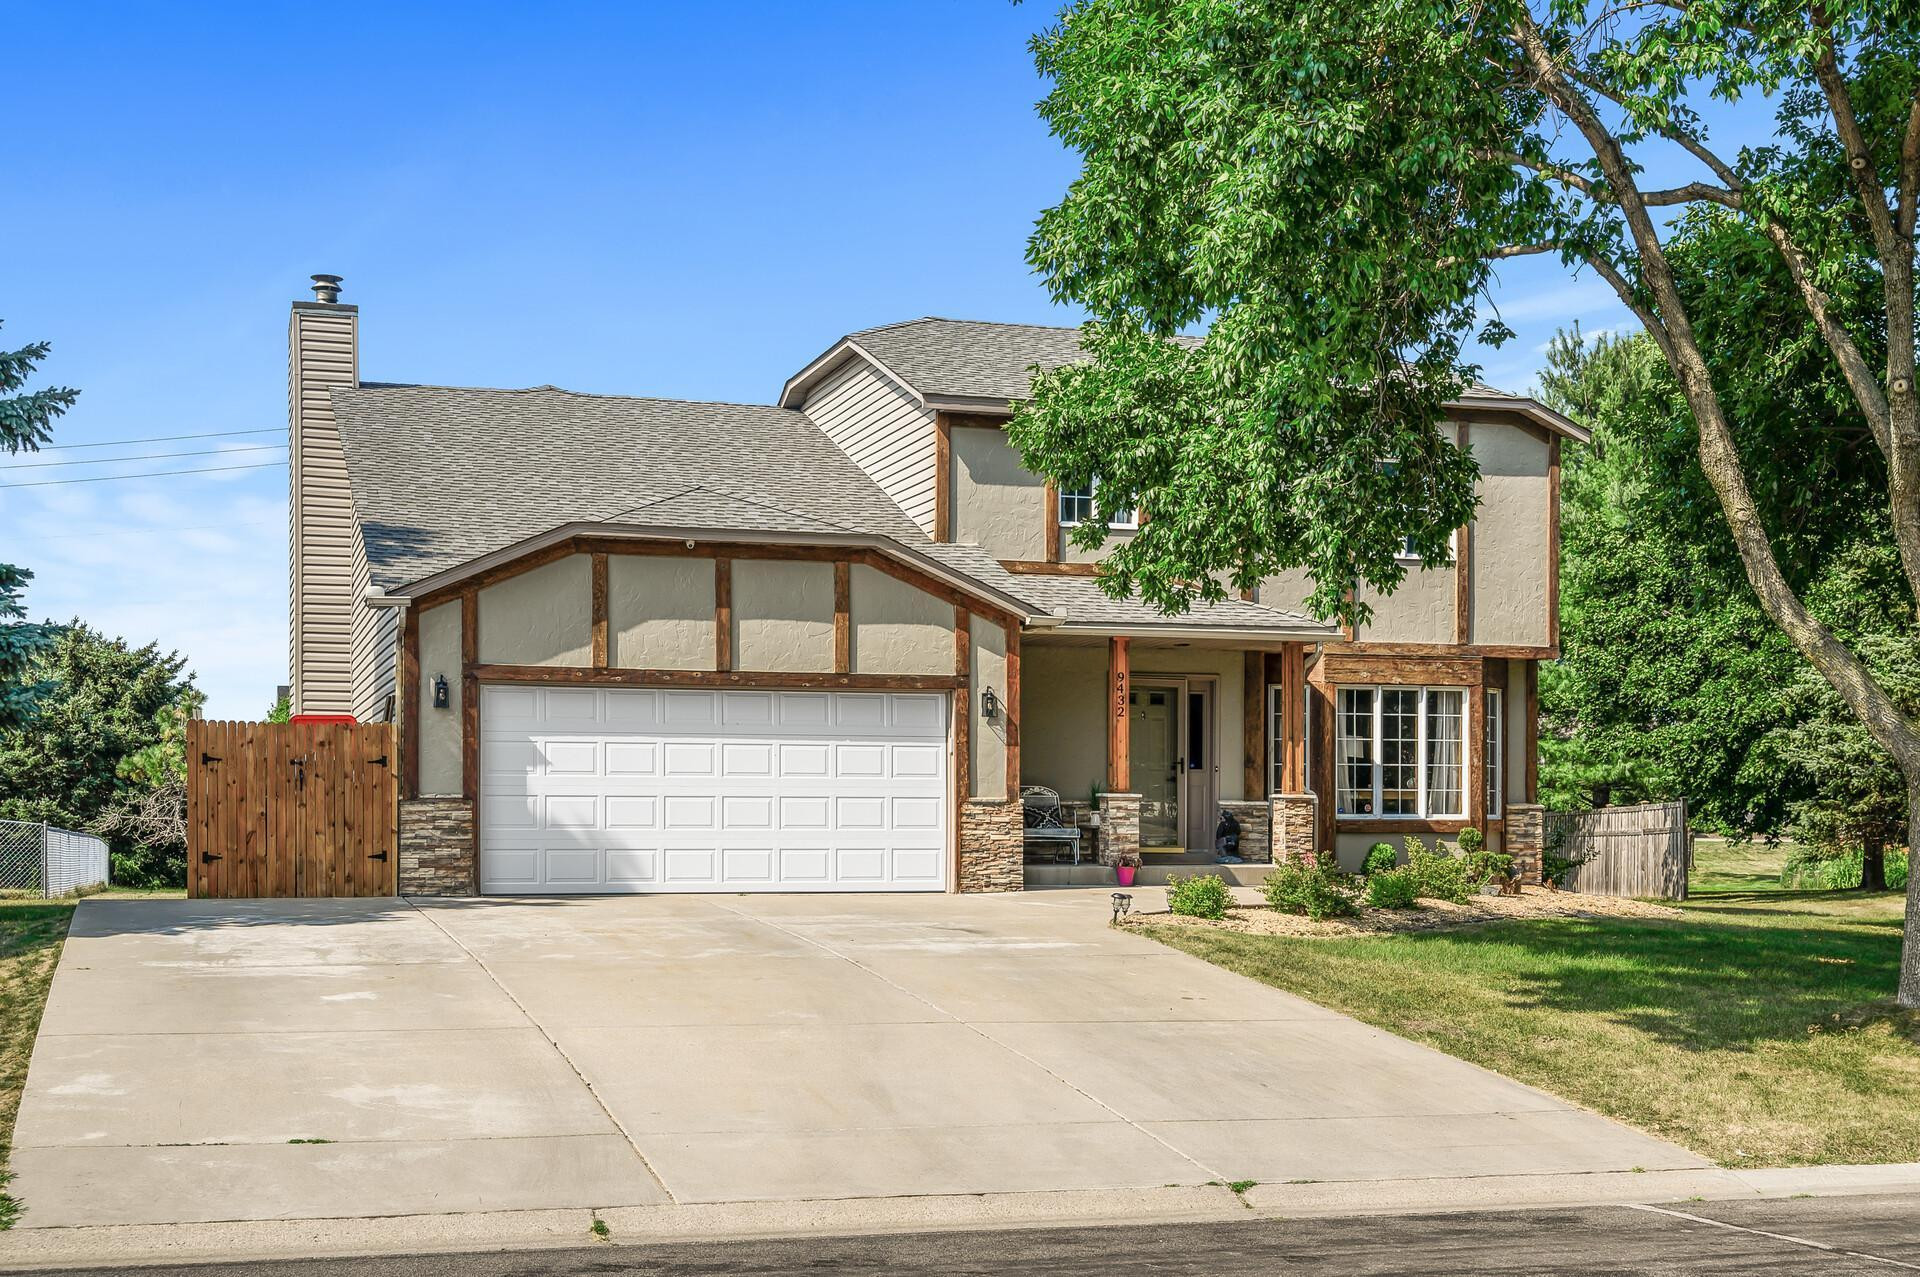 9432 71st Bay S, Cottage Grove, MN 55016